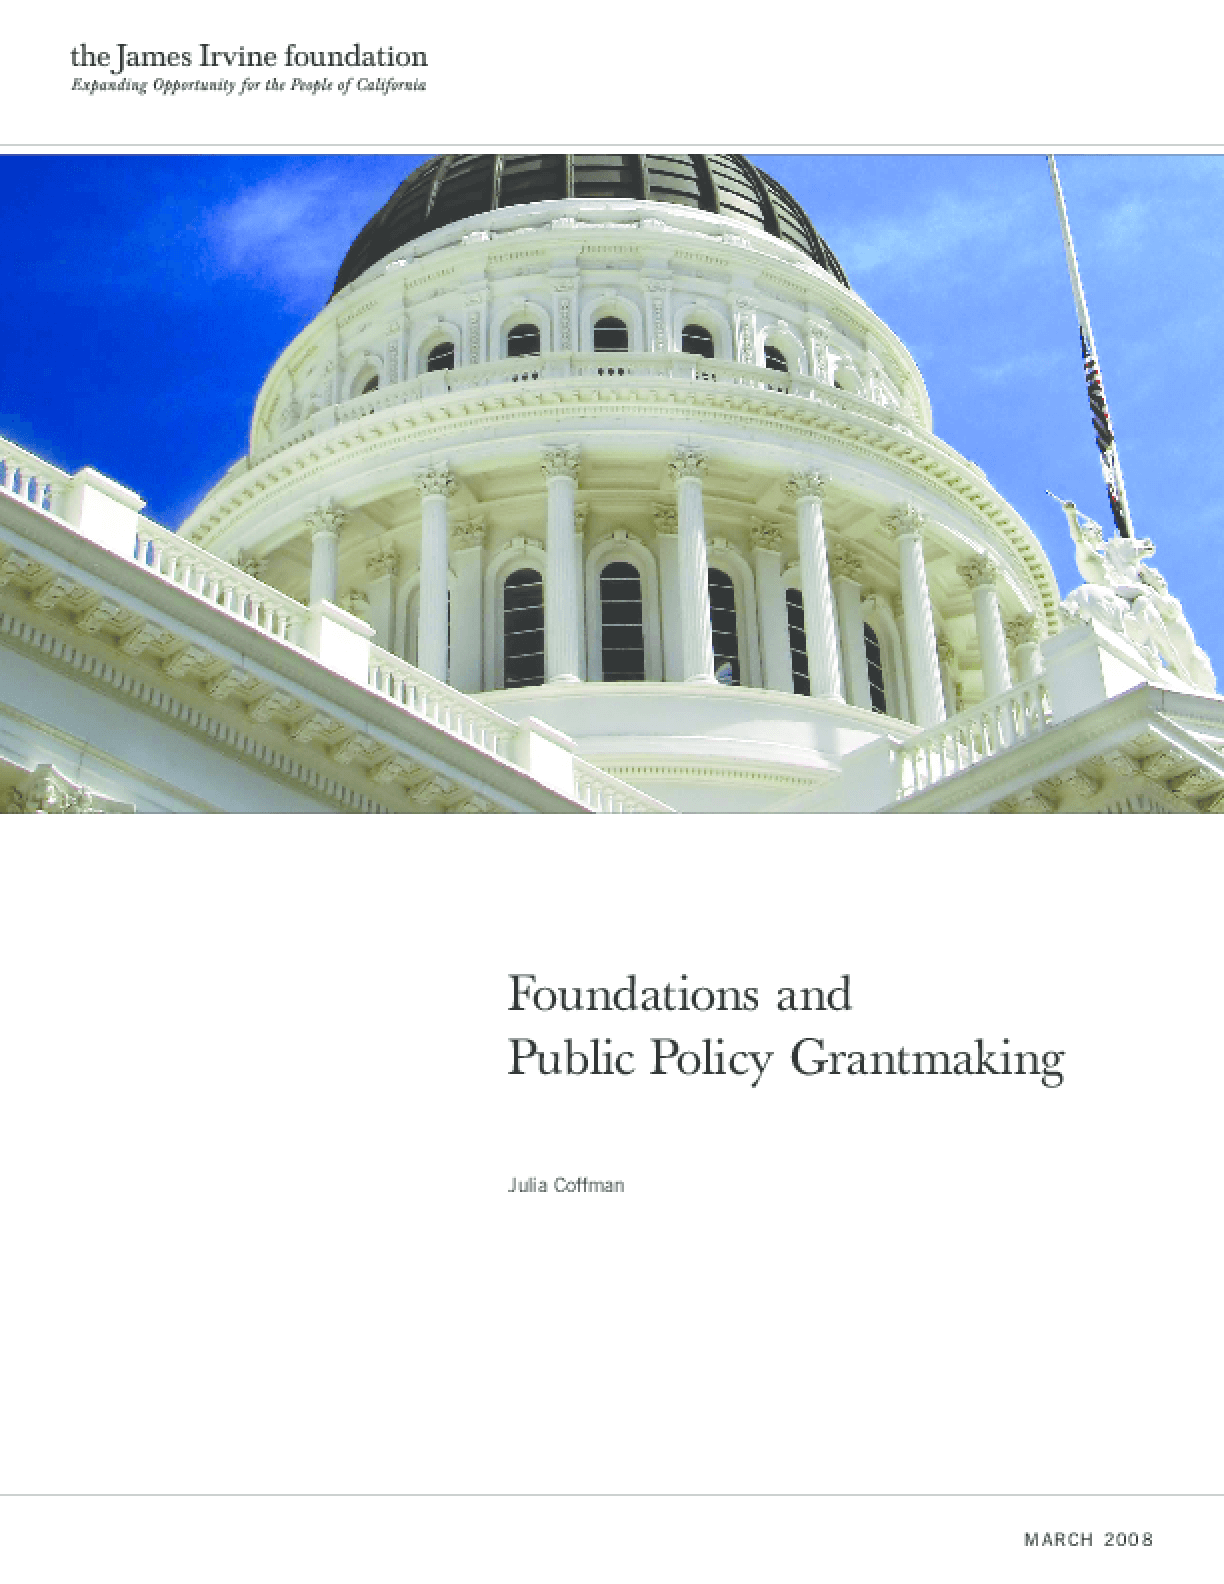 Foundations and Public Policy Grantmaking